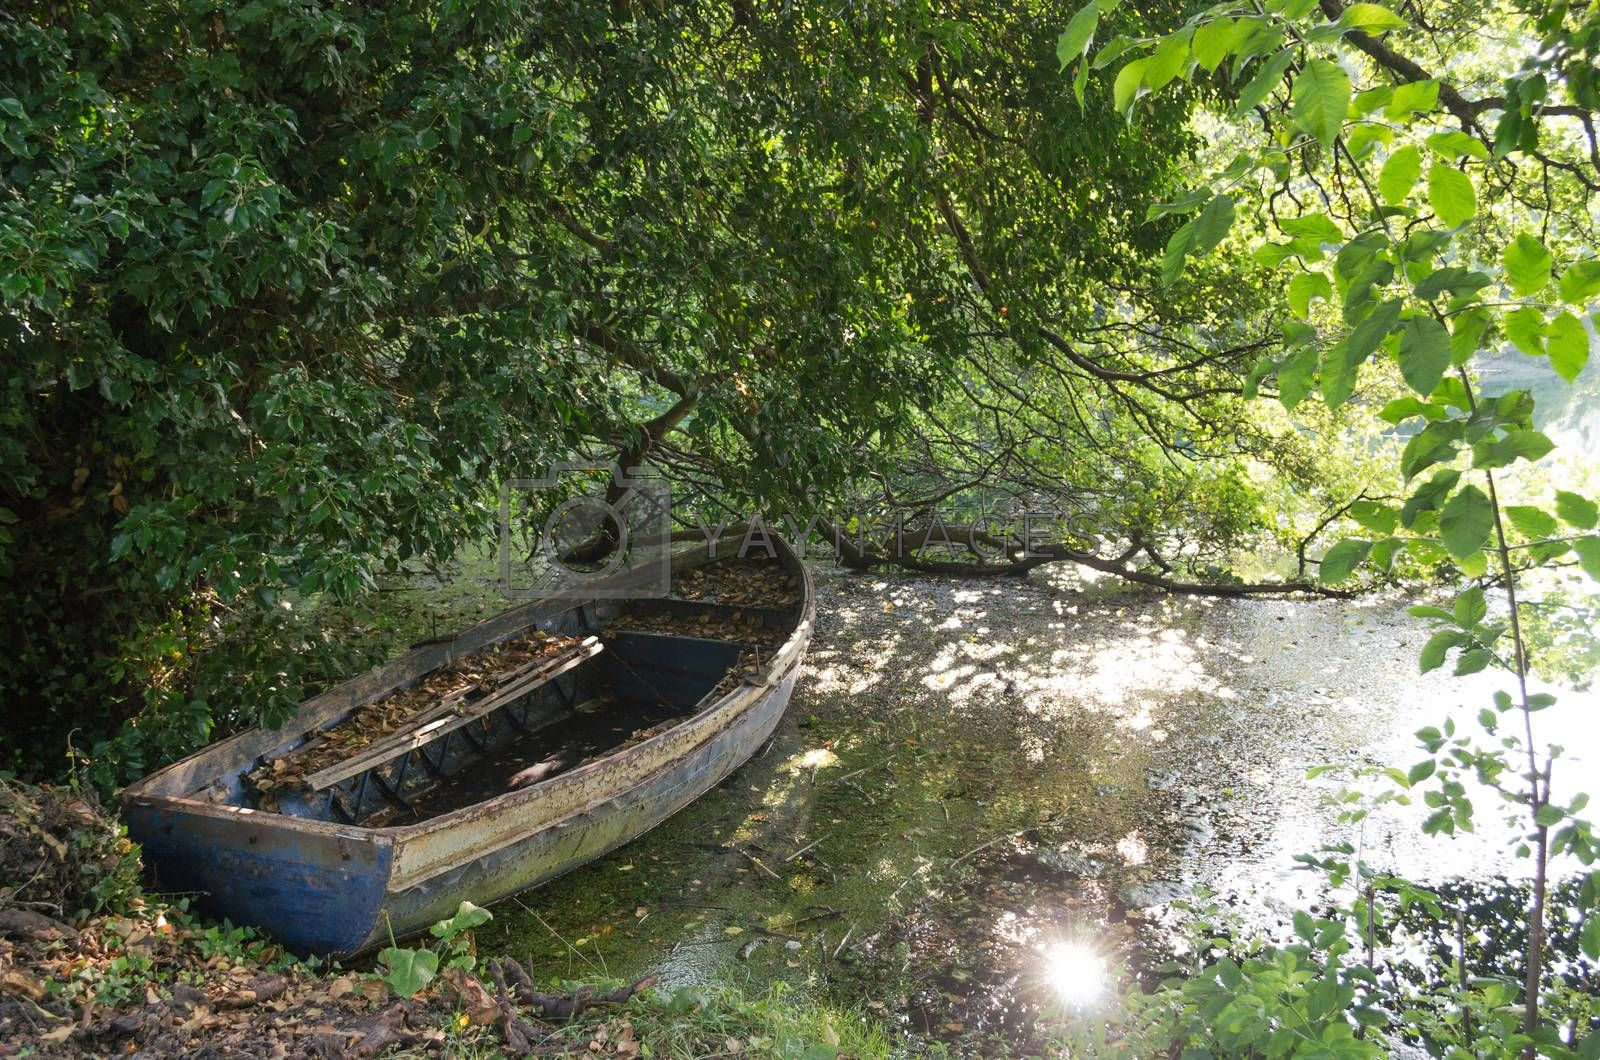 Old forgotten boat covered with leafs in water